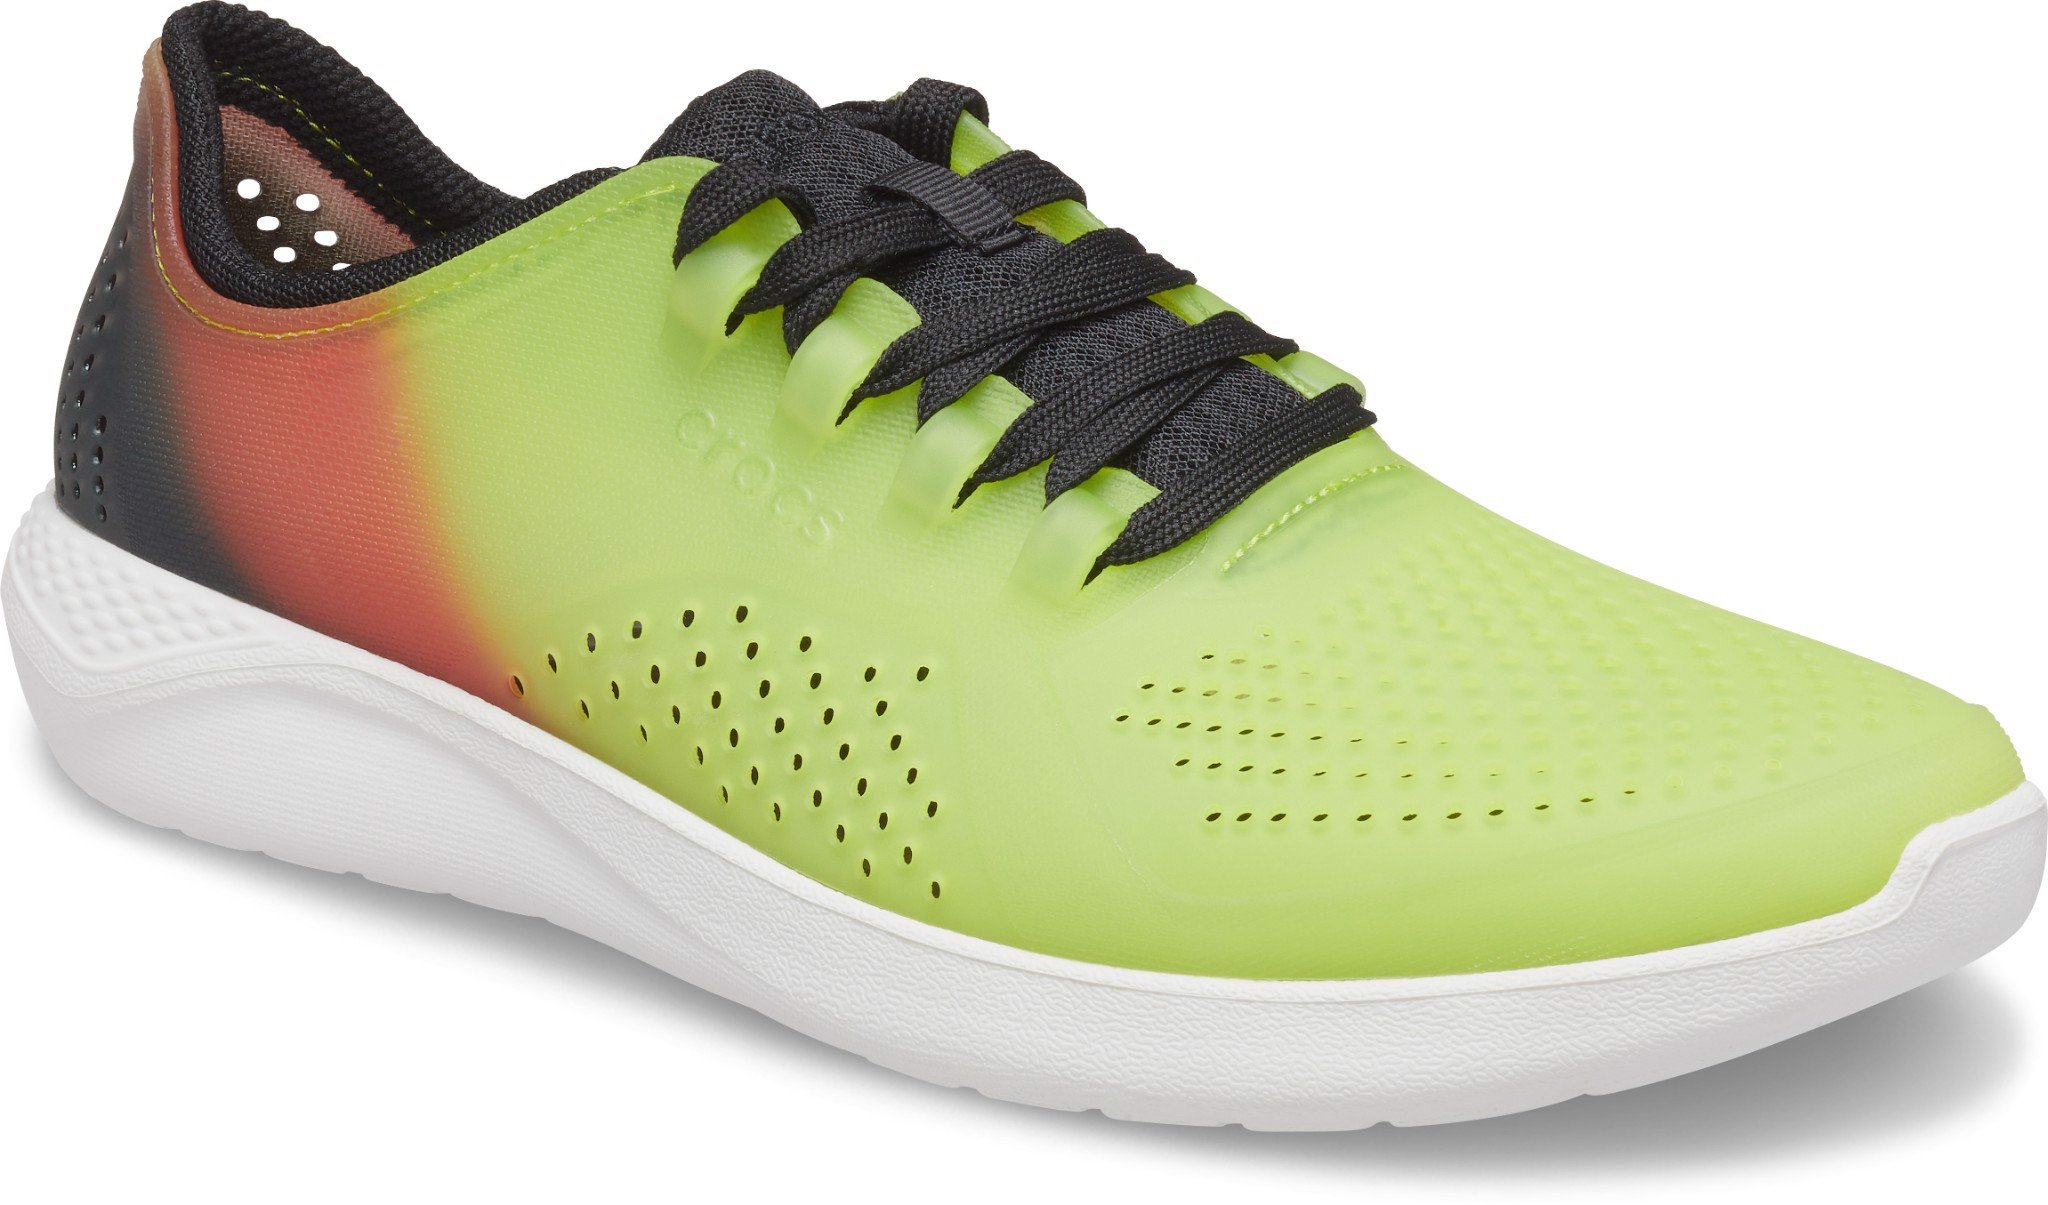 Crocs - Giày thời trang nam LiteRide Pacer Color Lime Punch Almost White Lifestyle SS21-2065